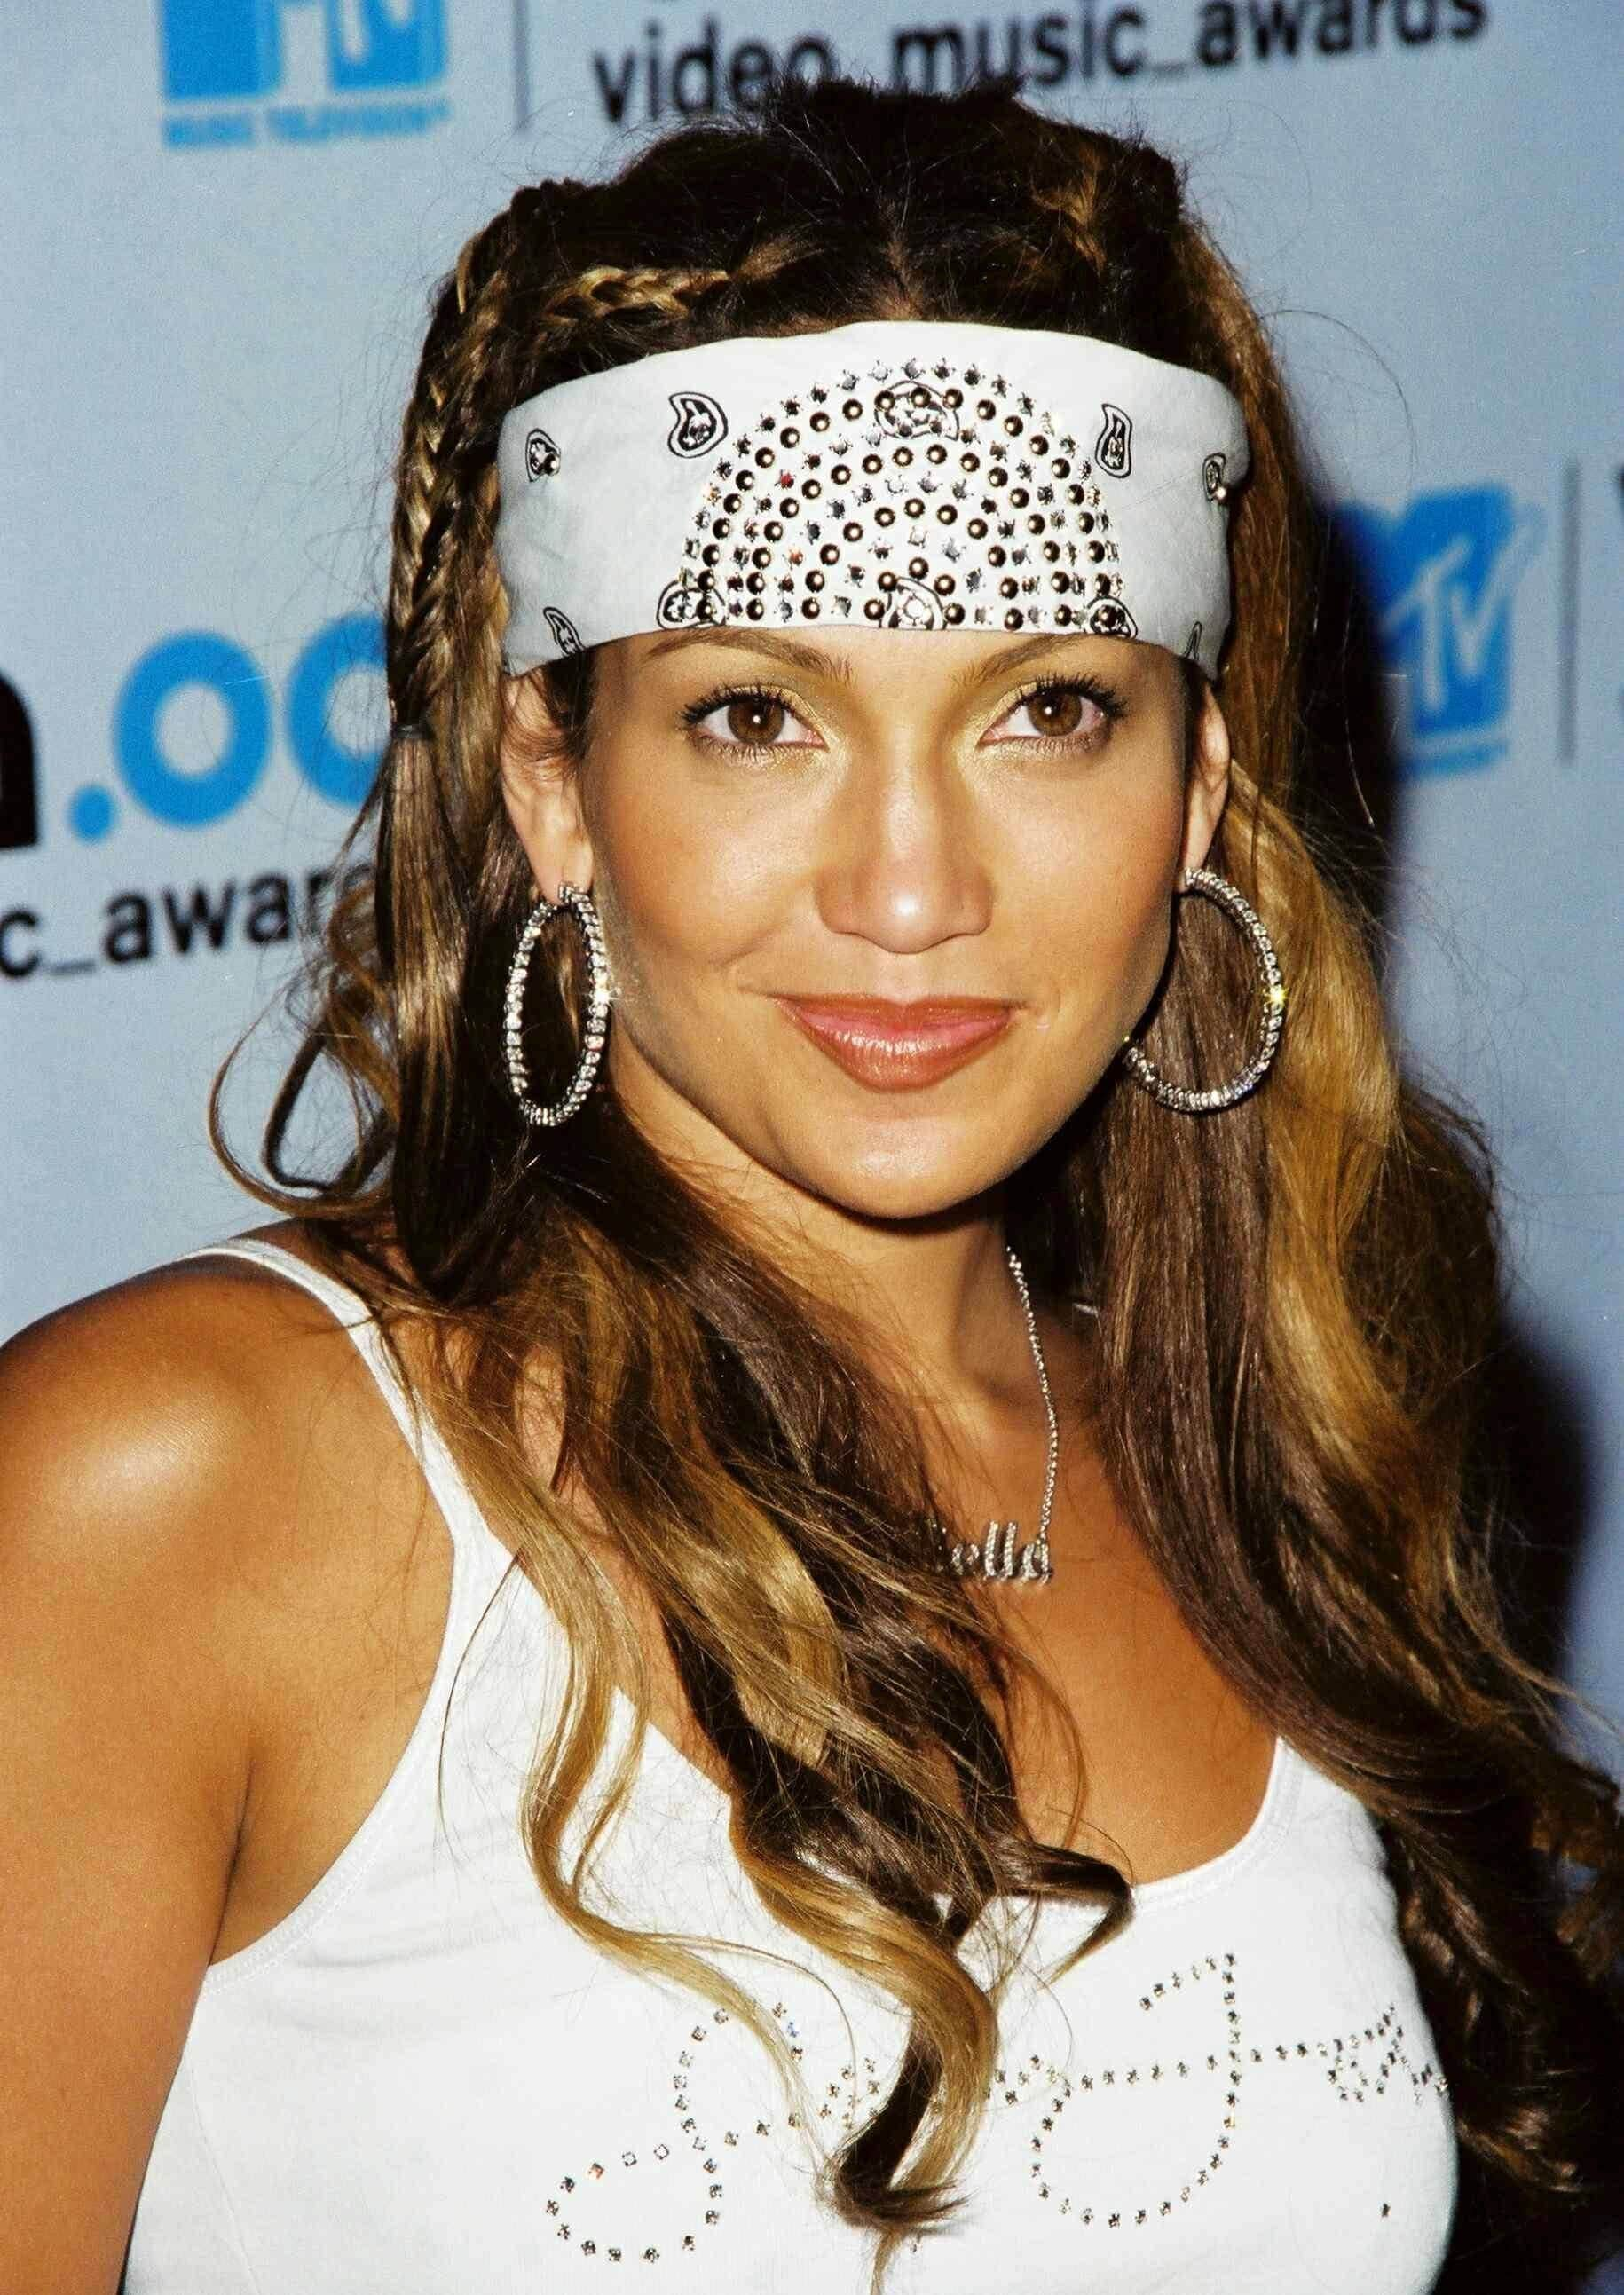 Jennier Lopez mane moments - long brown hair with blond ehighlights in wavy style with white bandana